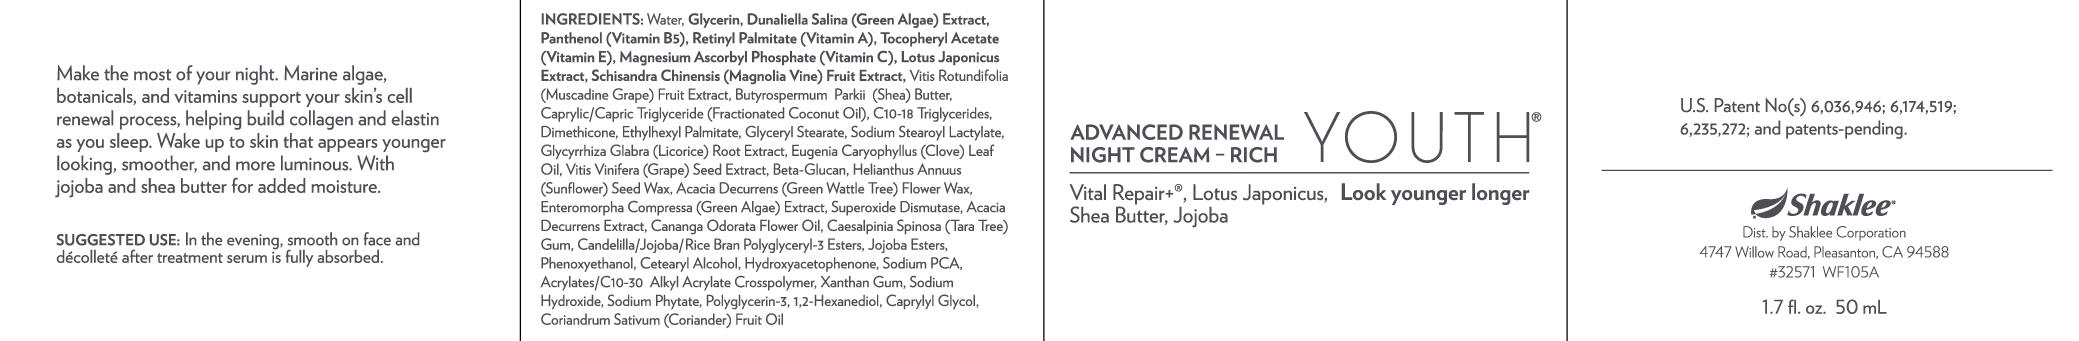 Advanced Renewal Night Cream- Rich